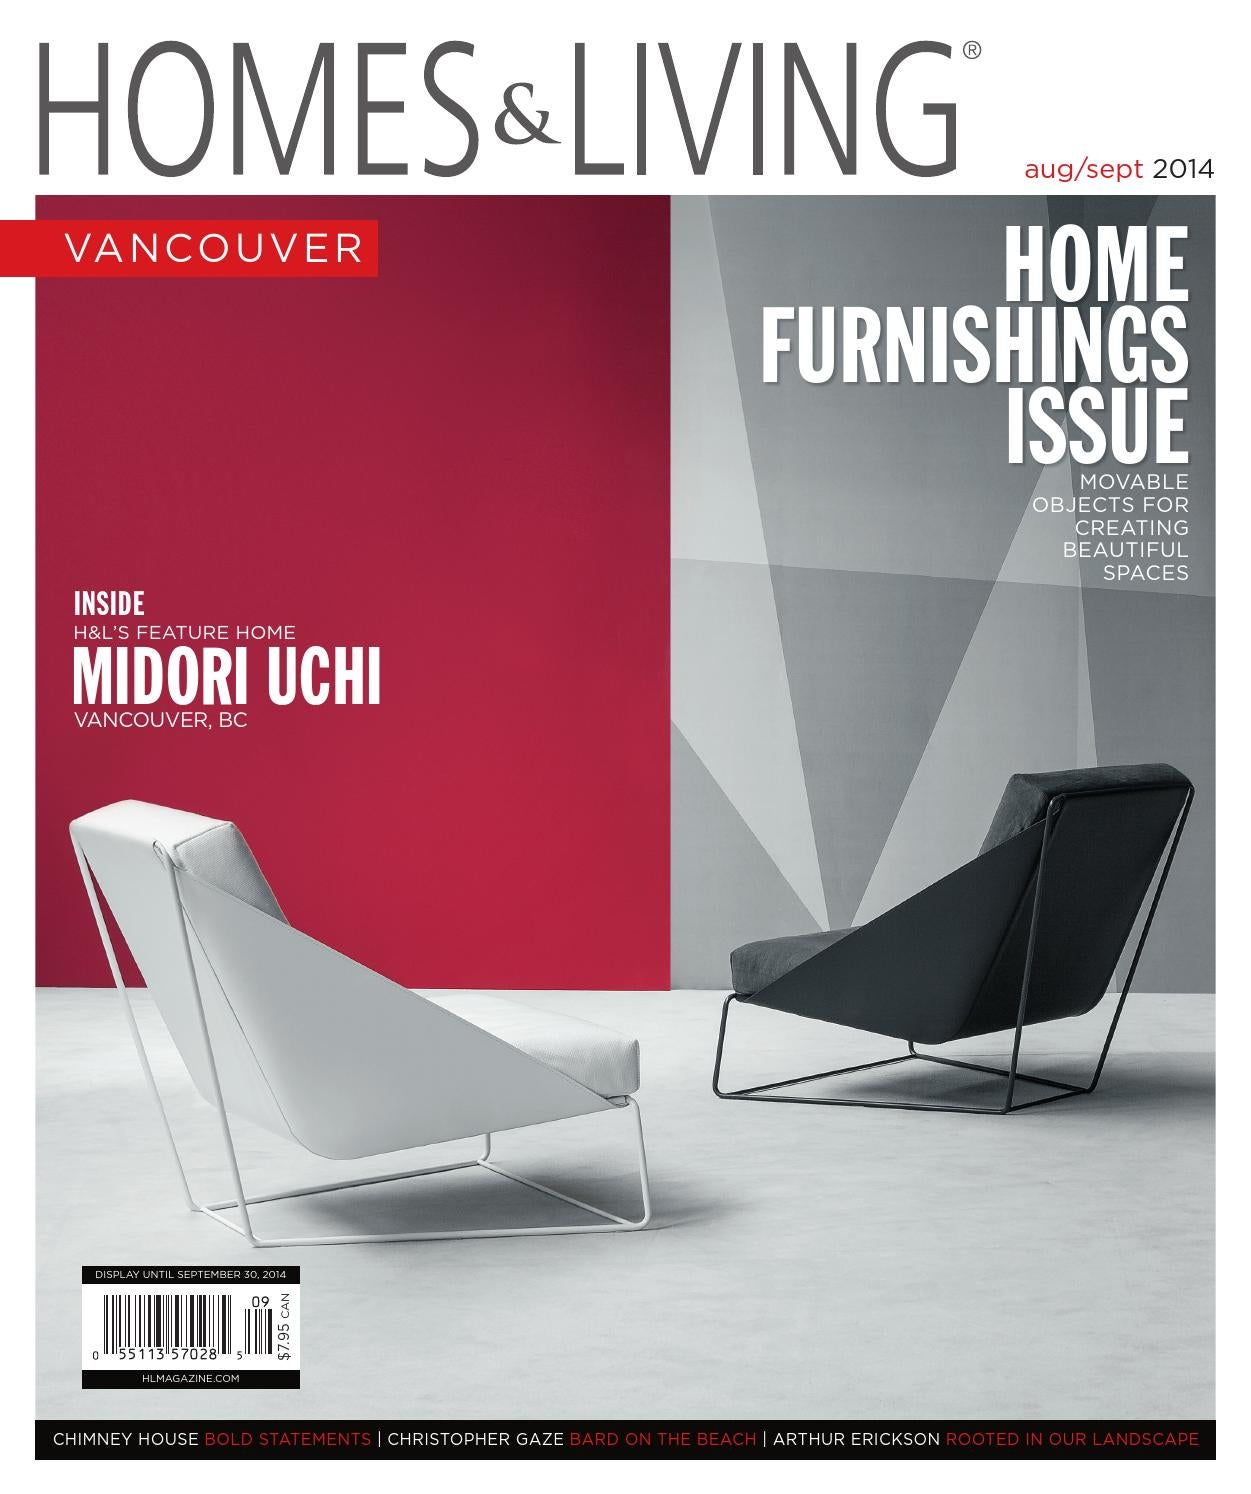 Vancouver Living: Homes & Living Vancouver August/September 2014 Issue By